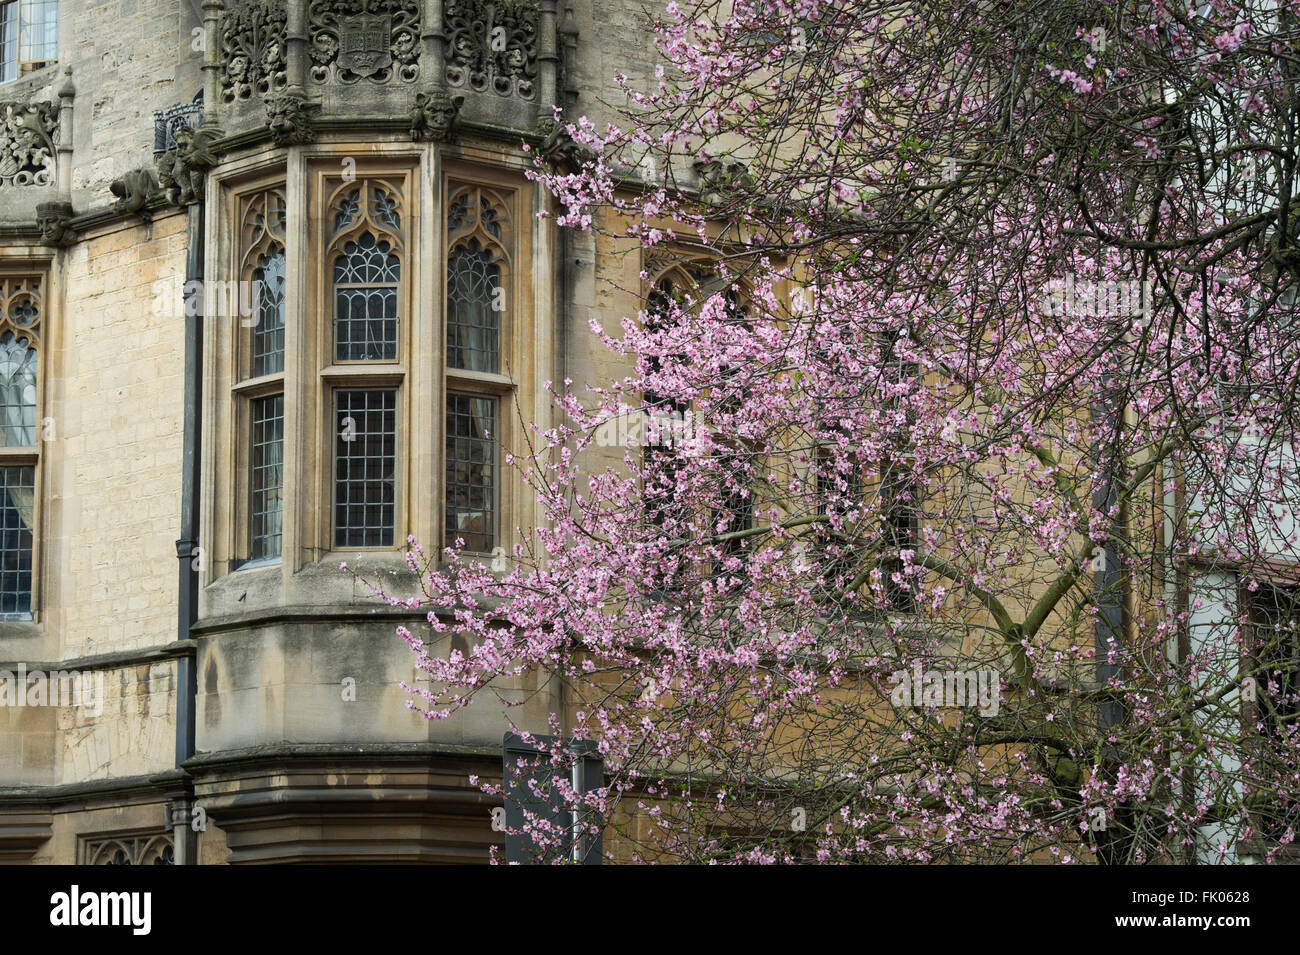 Almond Tree in blossom outside St Marys Church, High Street, Oxford, England - Stock Image